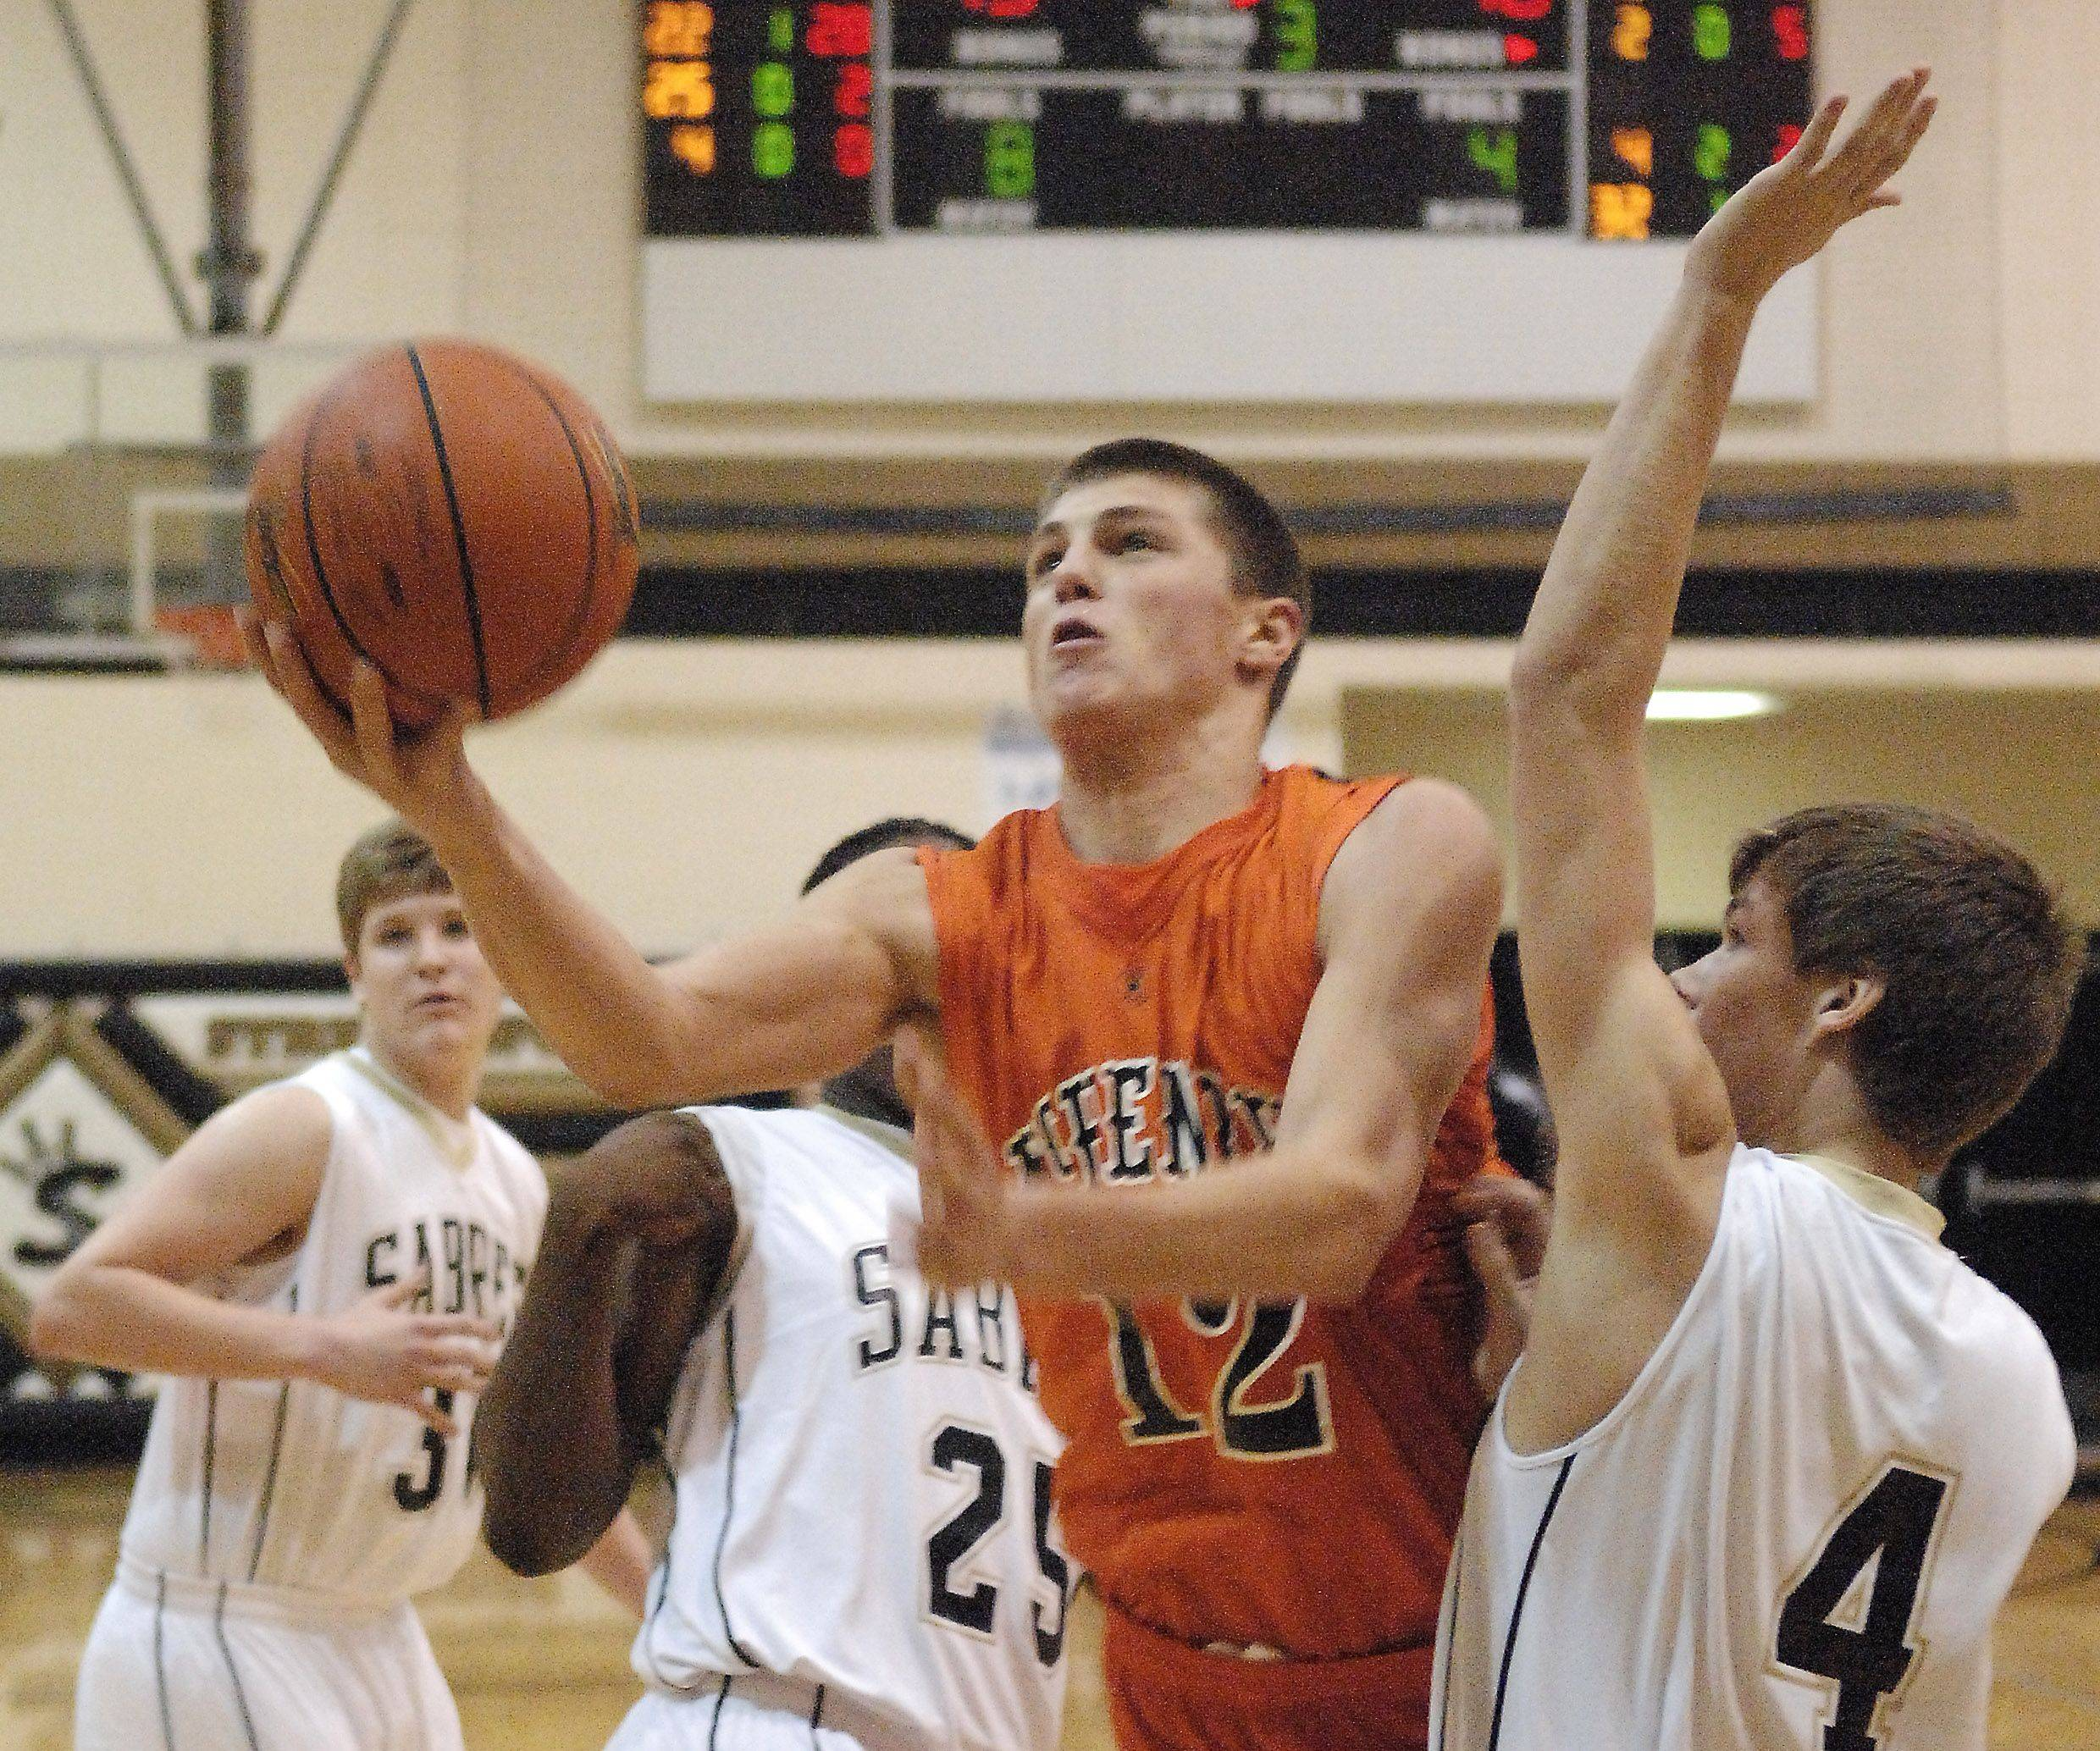 McHenry's Robert Tonyan drives and scores between three Streamwood defenders during Thursday's game at Streamwood.